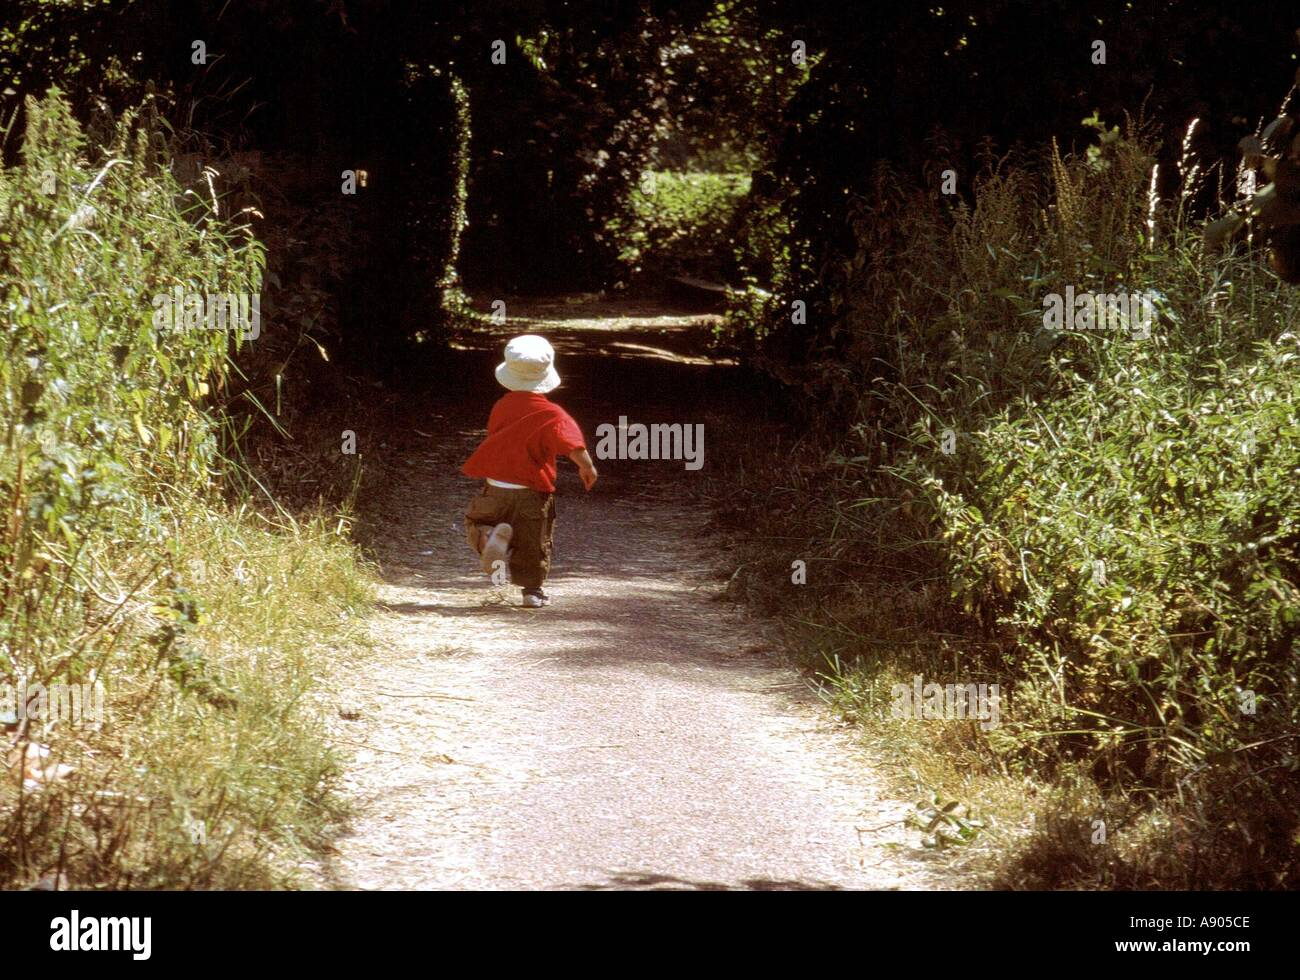 Young boy running down a country path - Stock Image